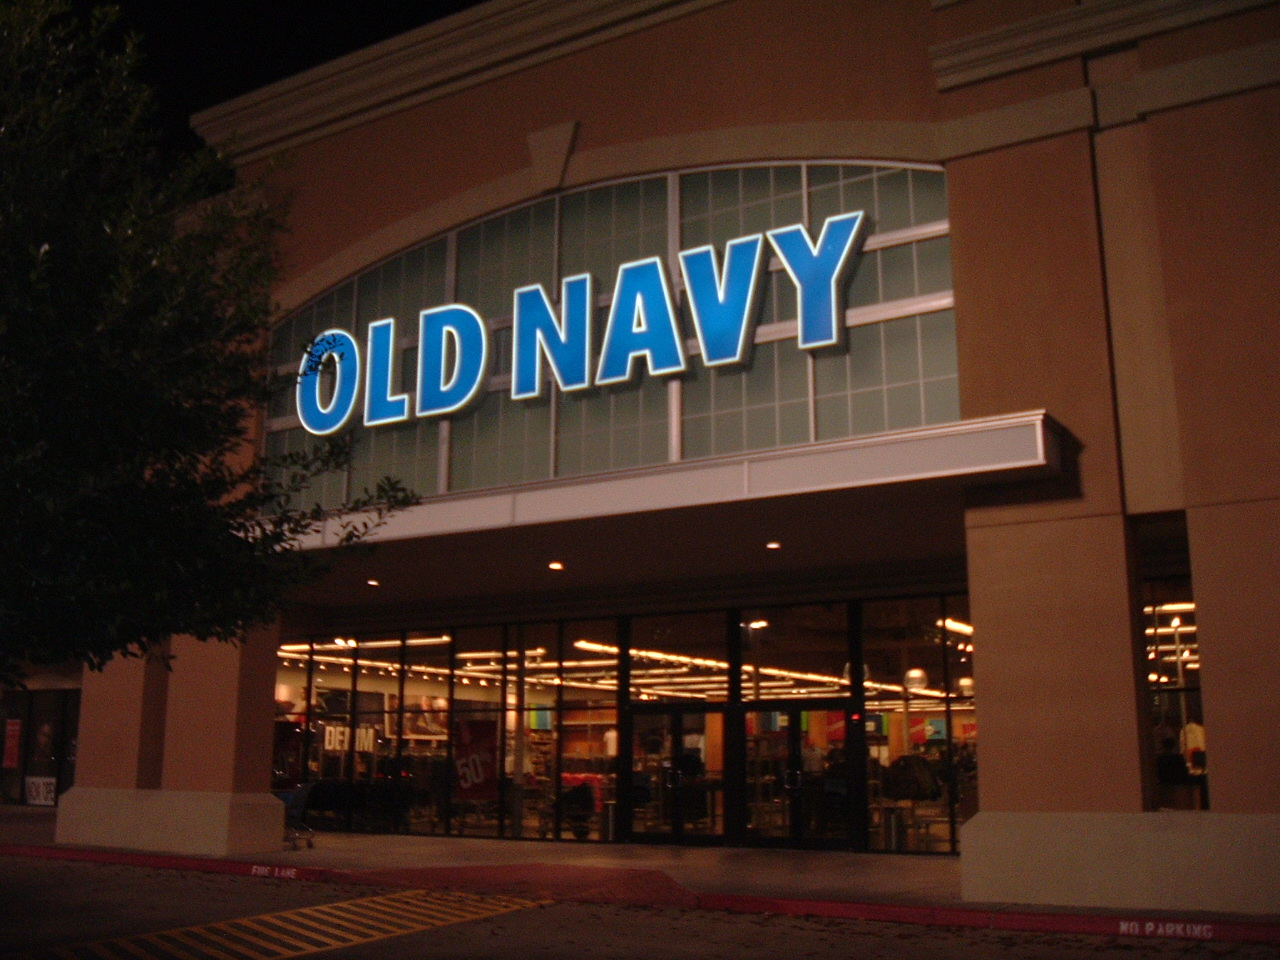 Yahoo! Shopping is the best place to comparison shop for Old Navy Outlet Online Stores. Compare products, compare prices, read reviews and merchant ratings.